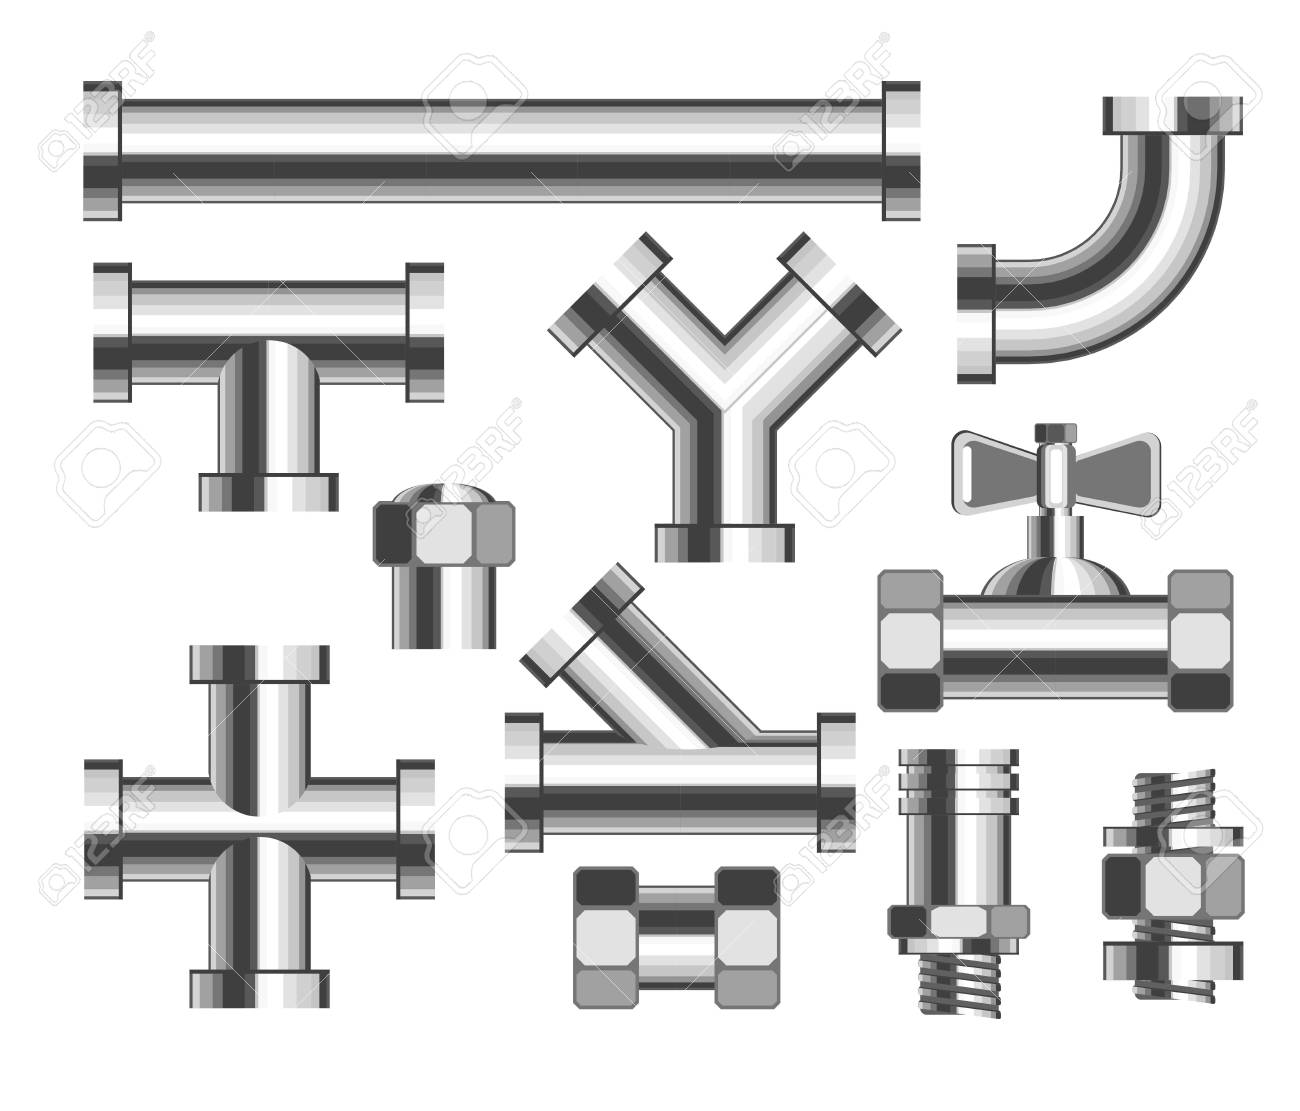 Pipes and tubes plumbing and building materials vector crane and nozzle bathroom water piping construction elements metal details and parts adapters replacement and household isolated objects. - 125864321